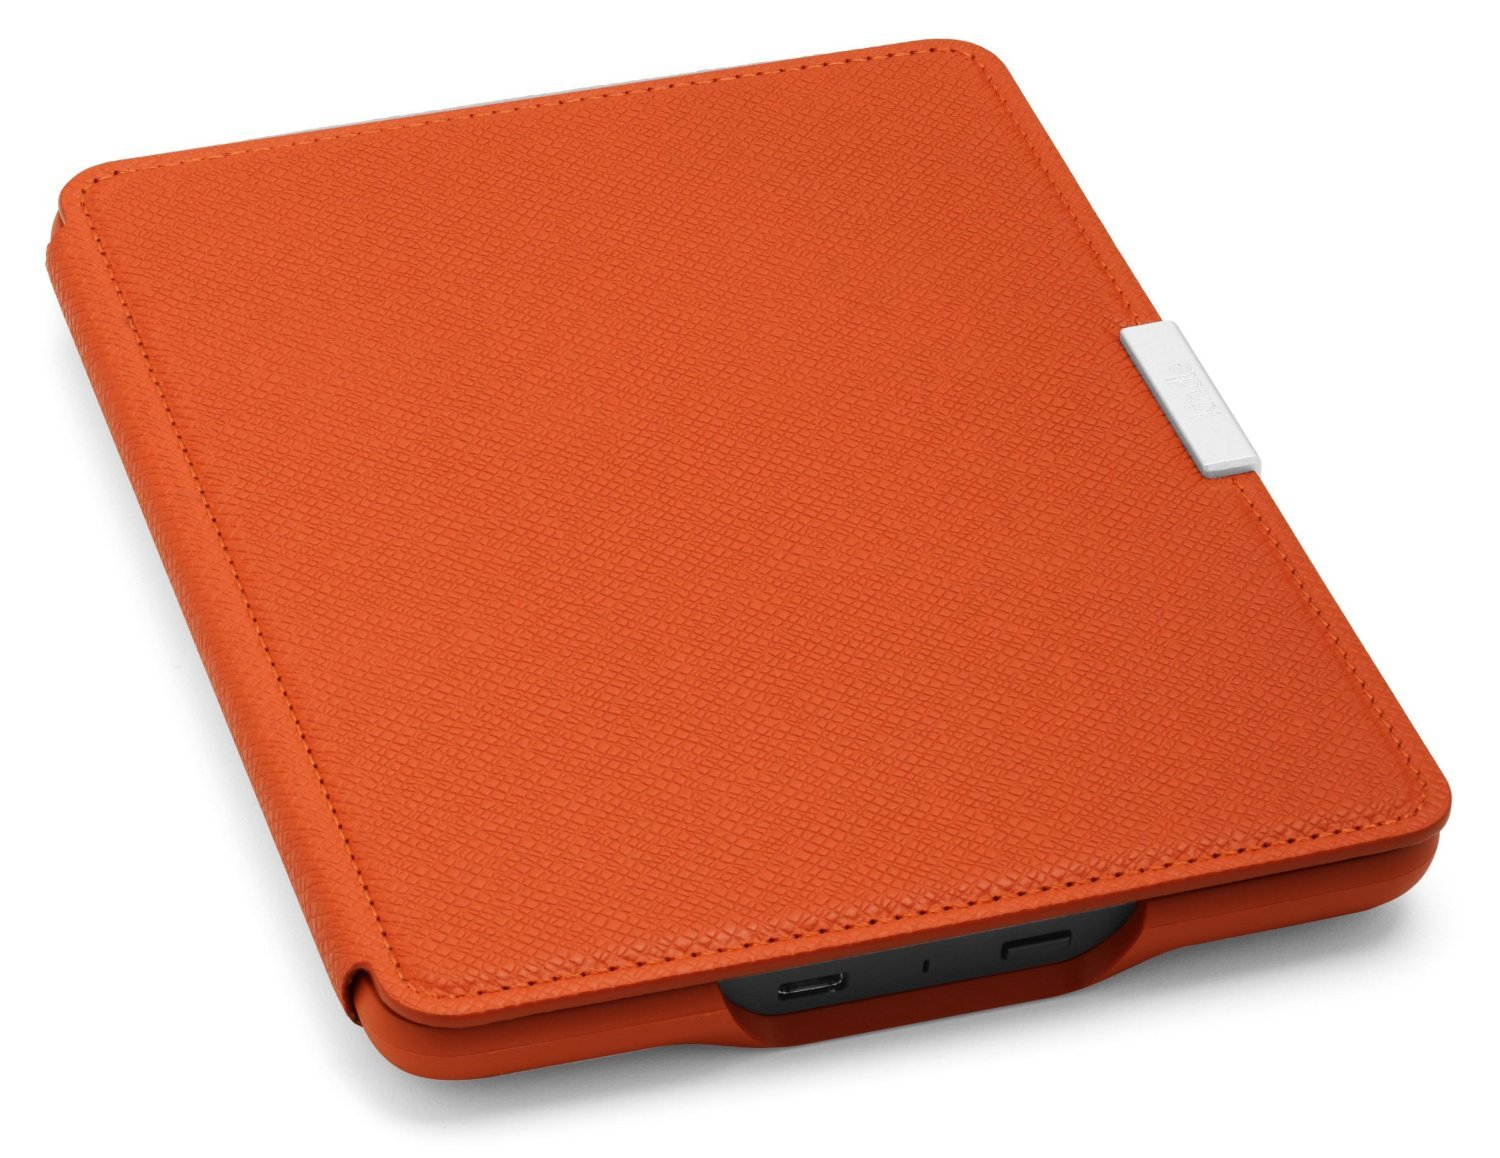 Чехол Leather Cover для Amazon Kindle Paperwhite Persimmon (Оранжевый). Фото N3